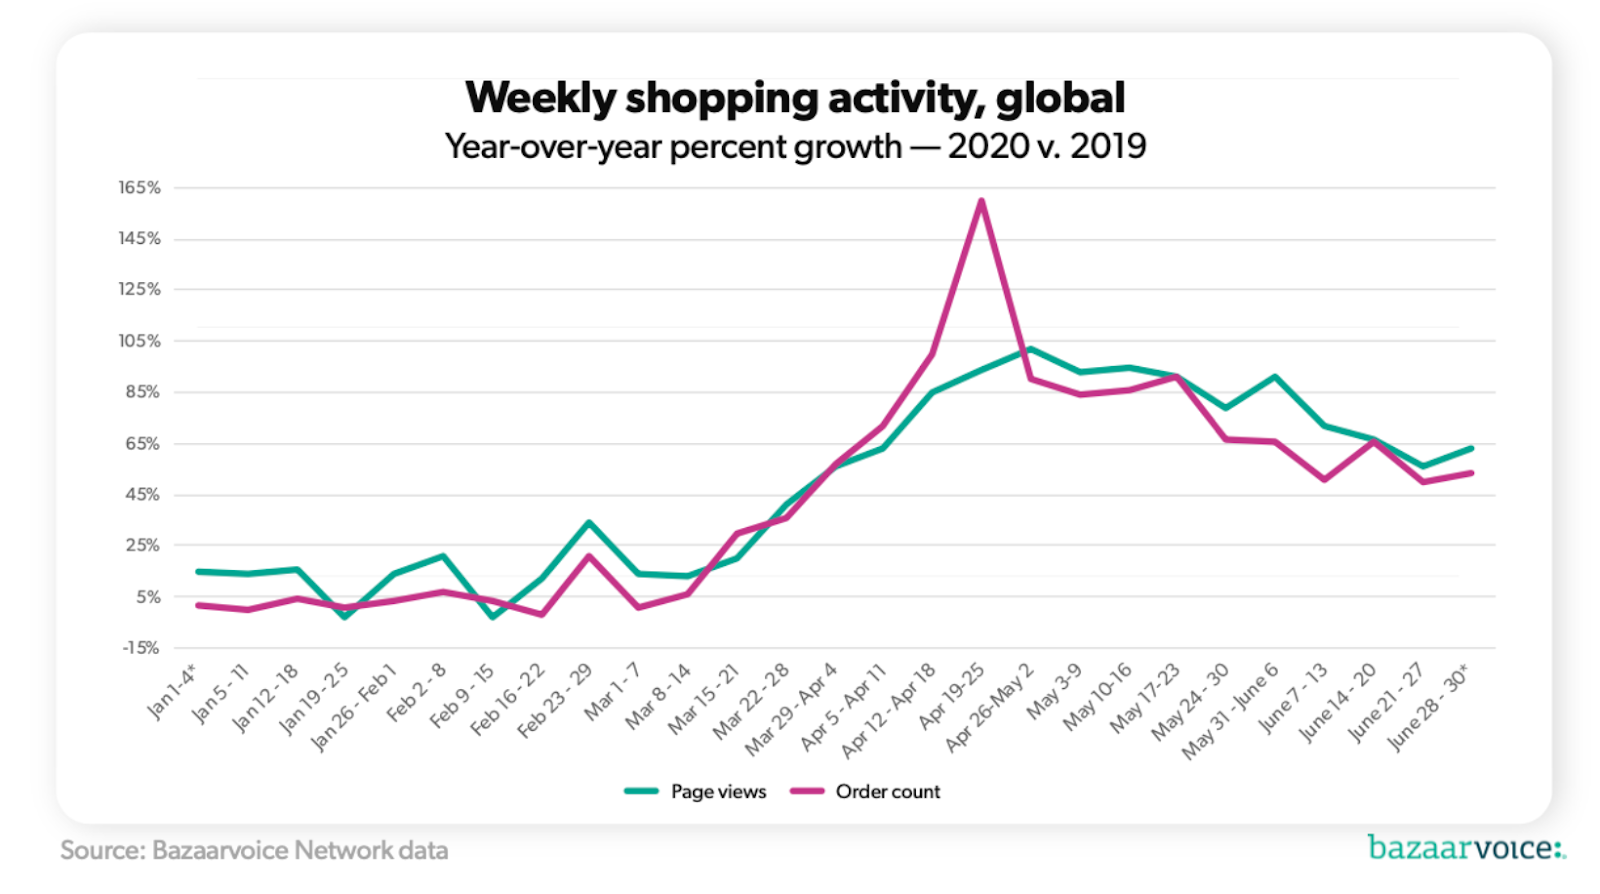 eCommerce growth due to COVID-19